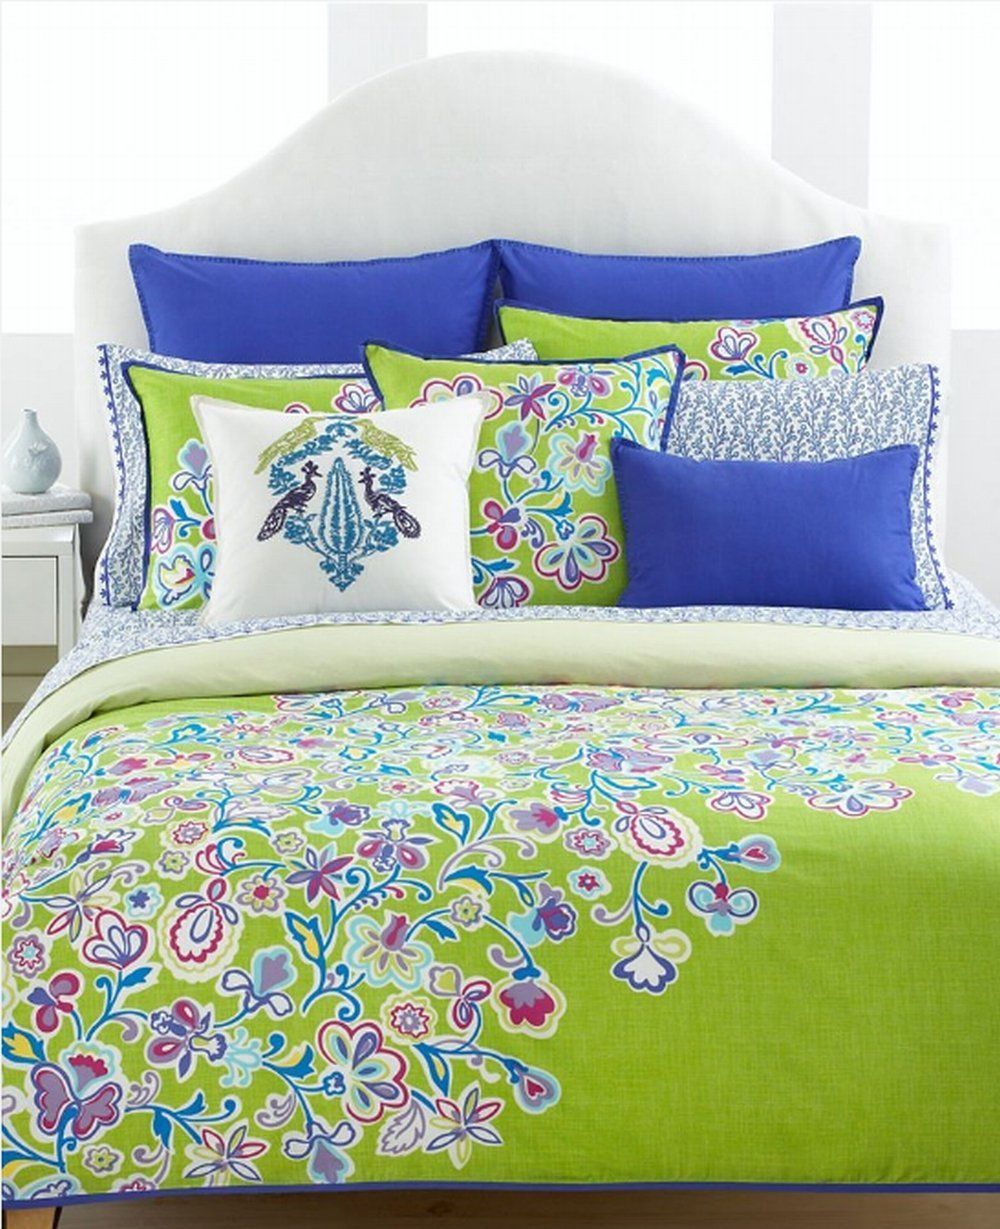 Plum and green bedding - Bedspread